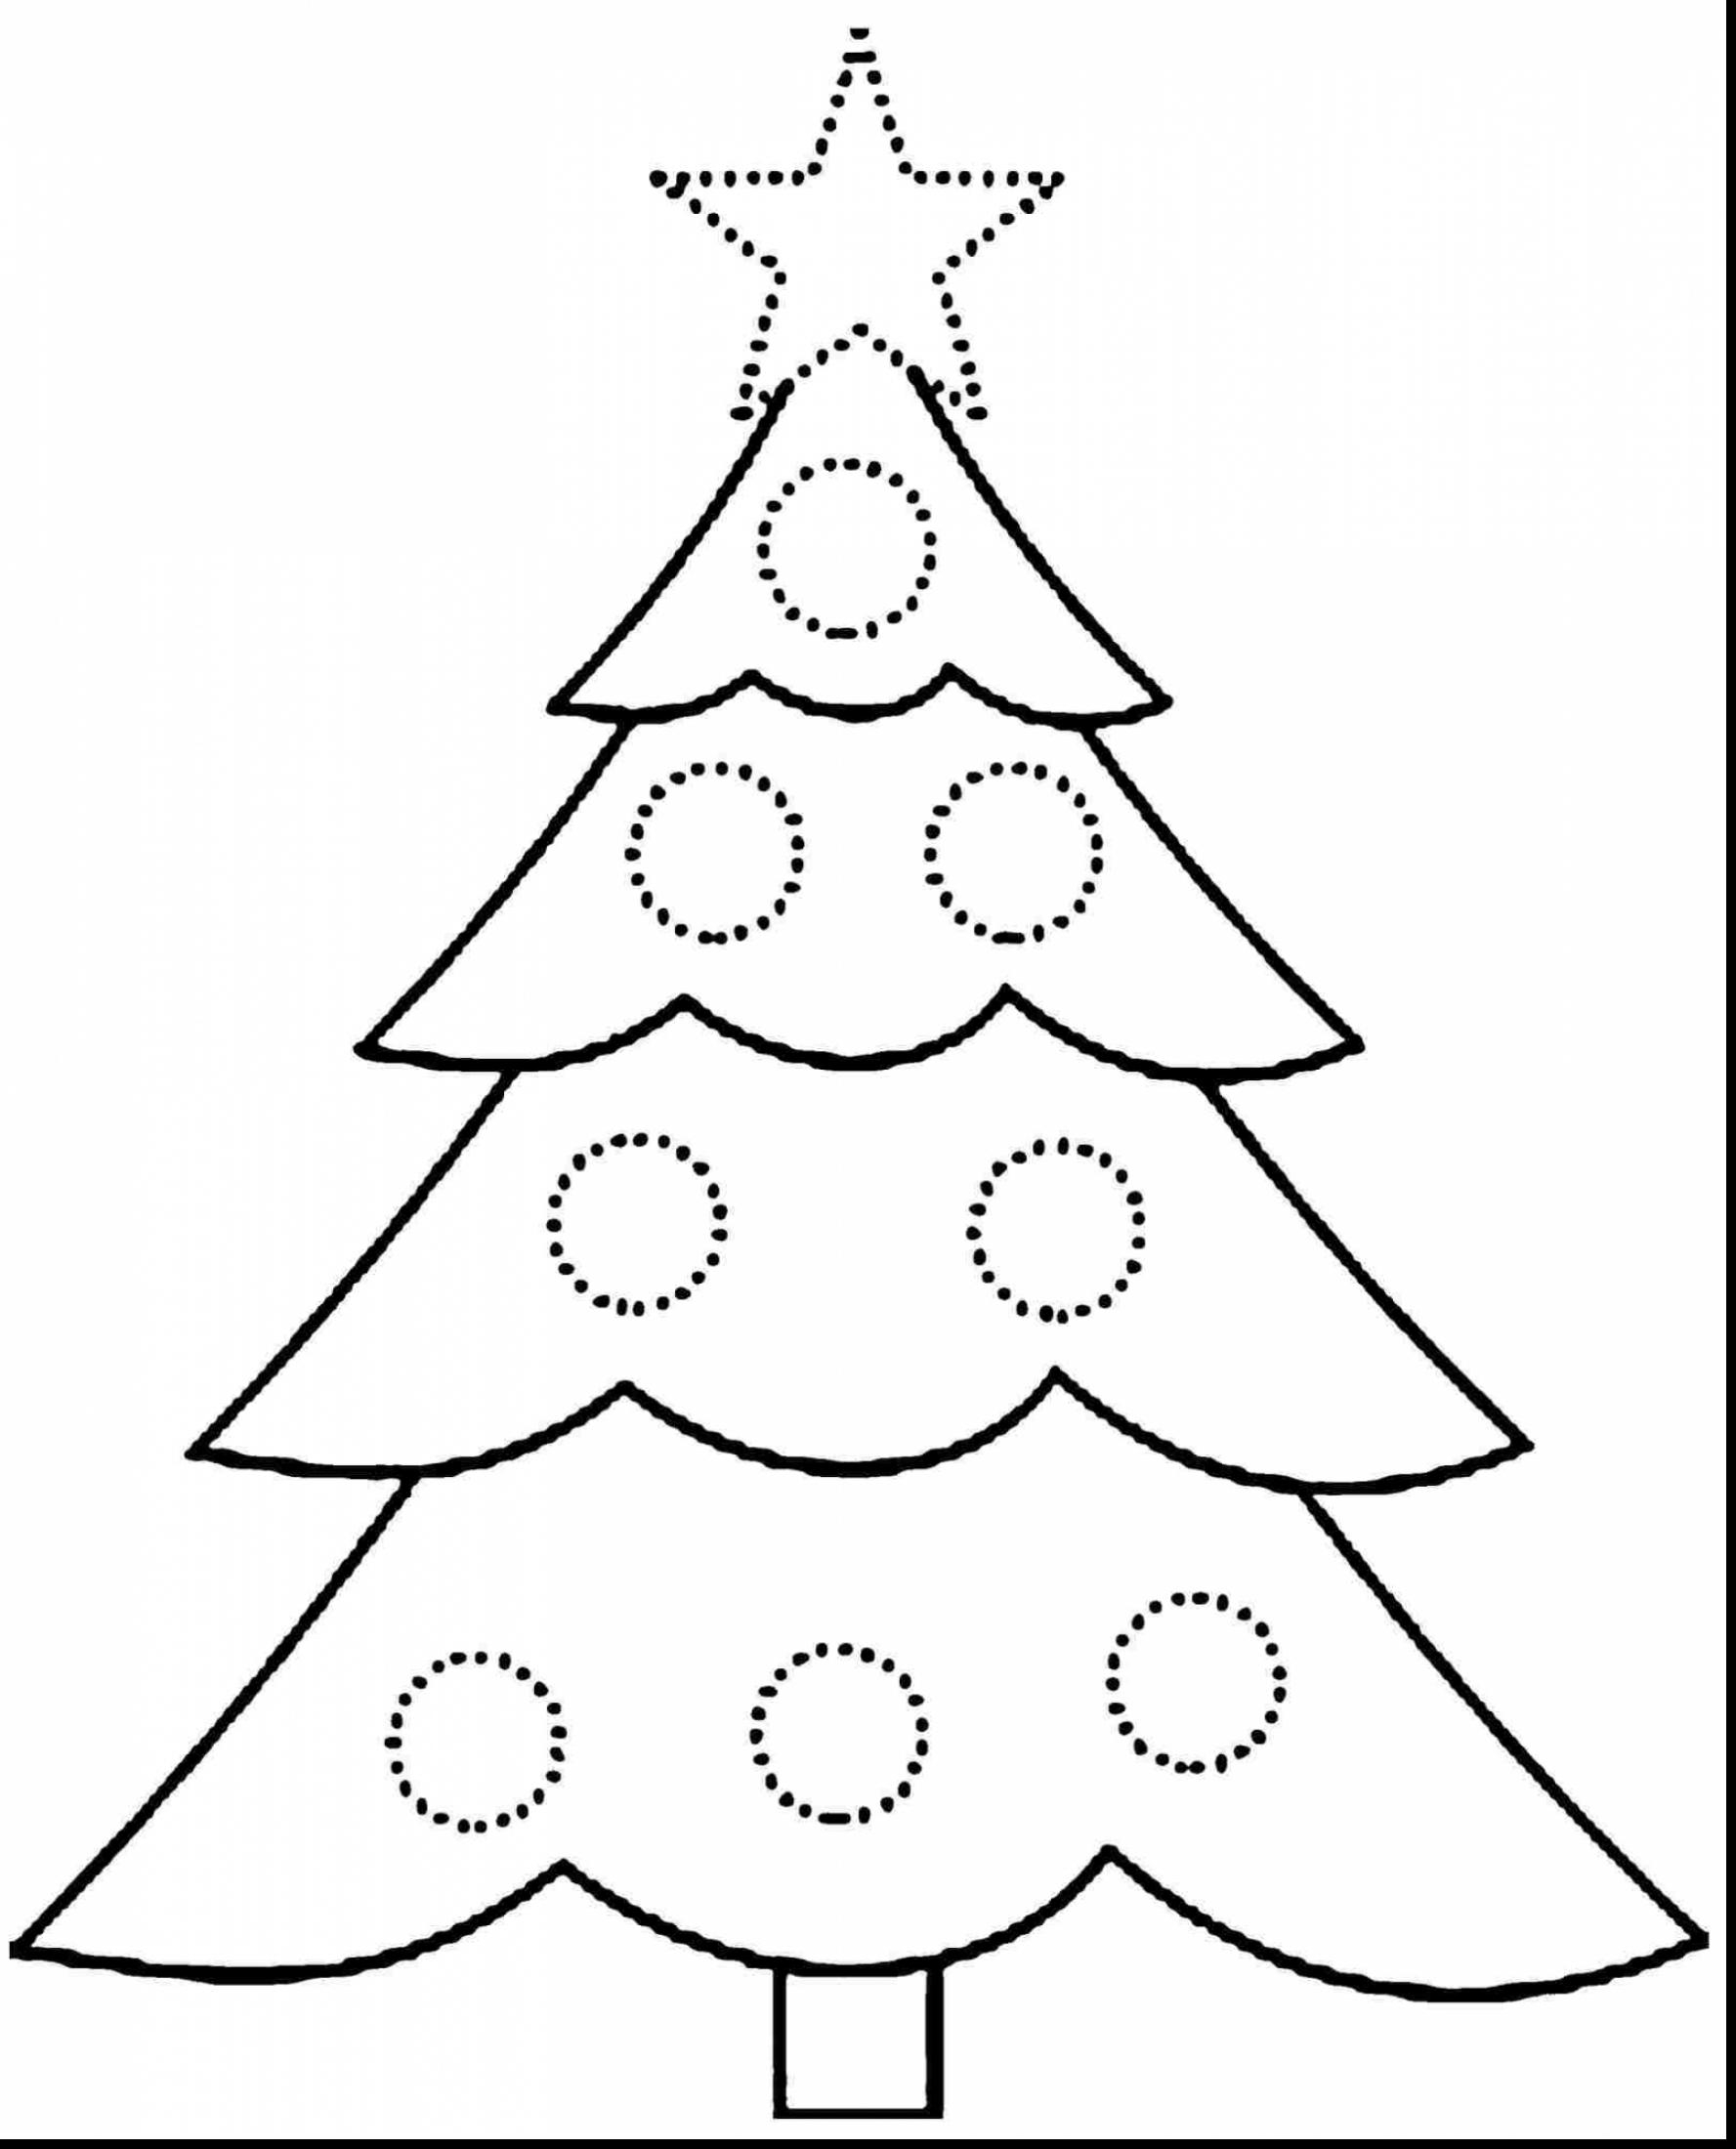 Christmas Tree Coloring Pages With Presents Page